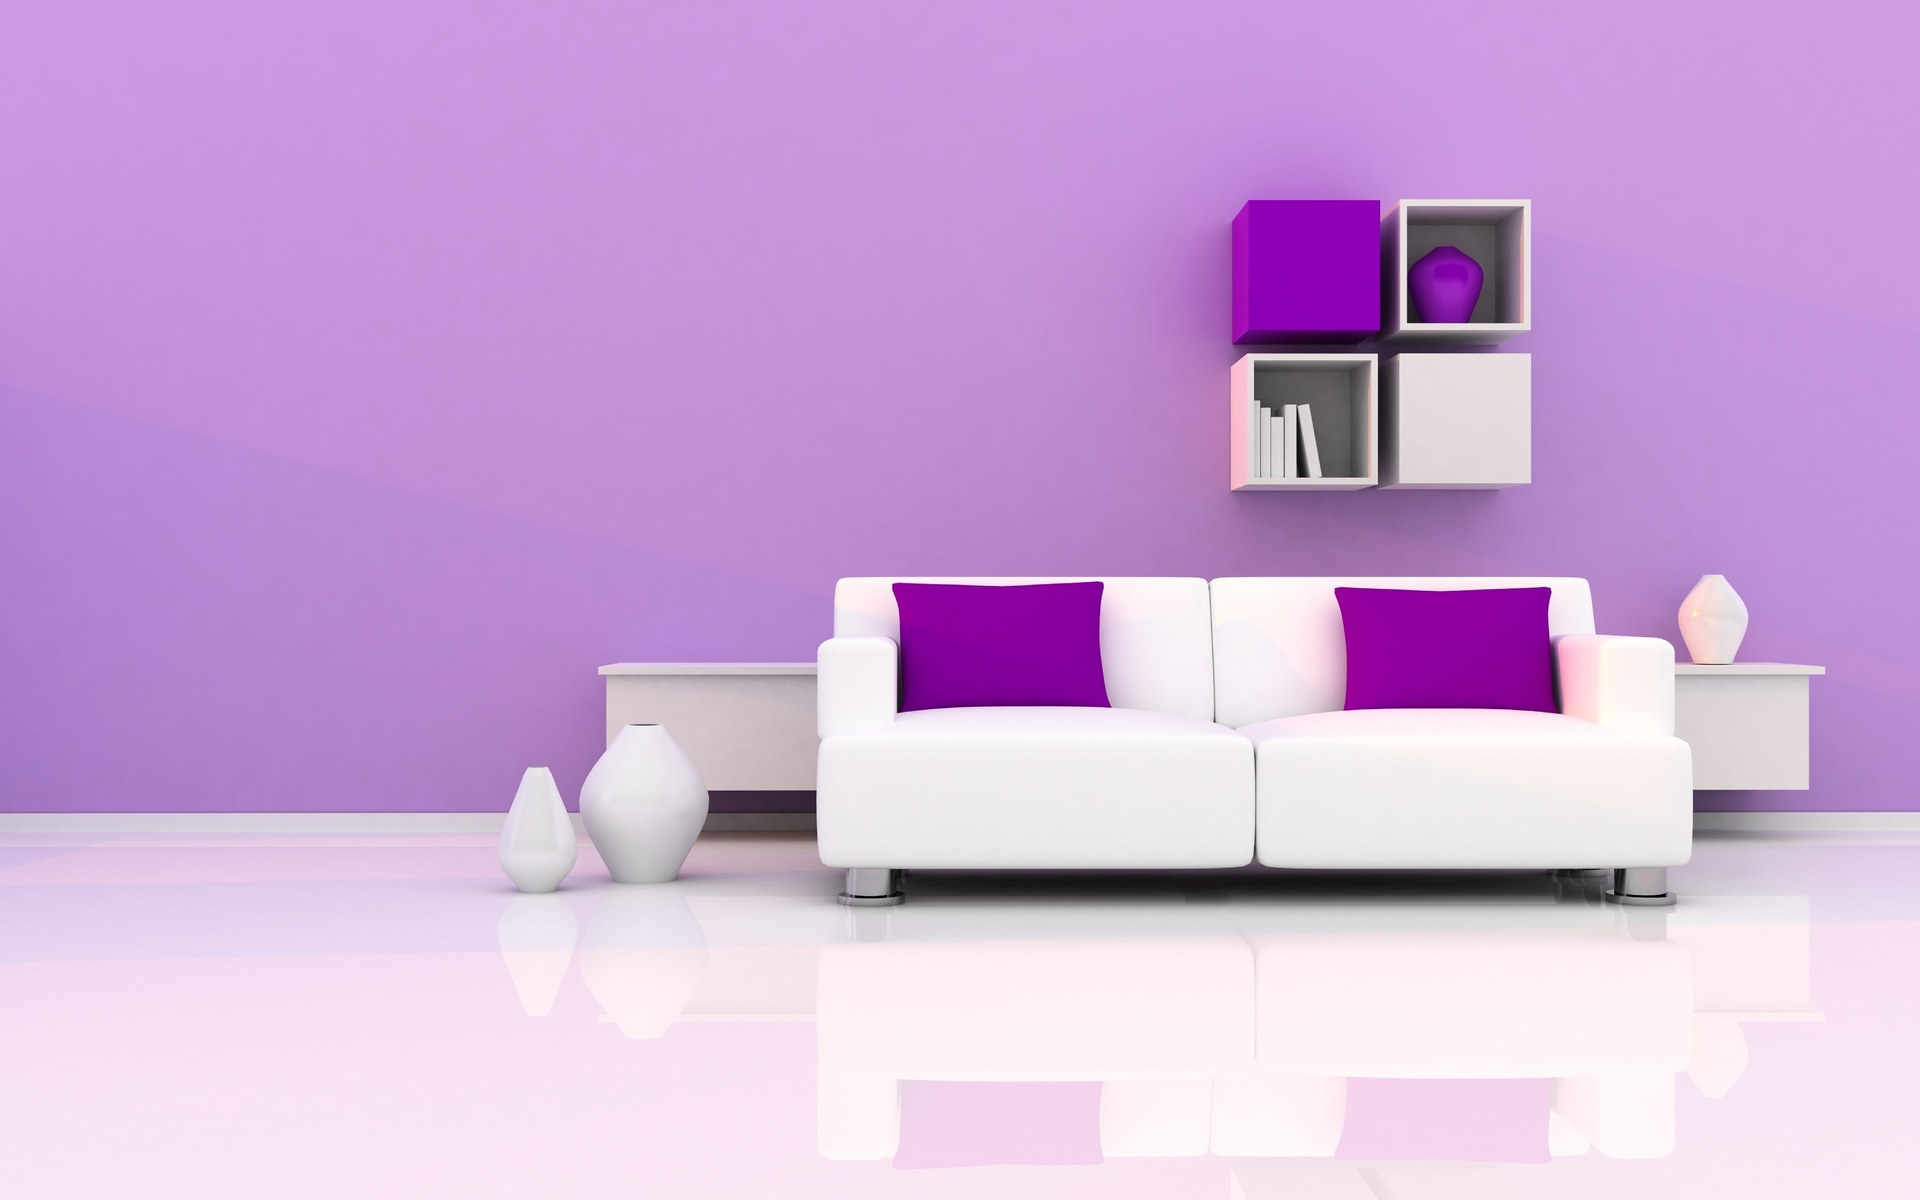 Interior Design Furniture: Furniture Wallpapers HD Free Download